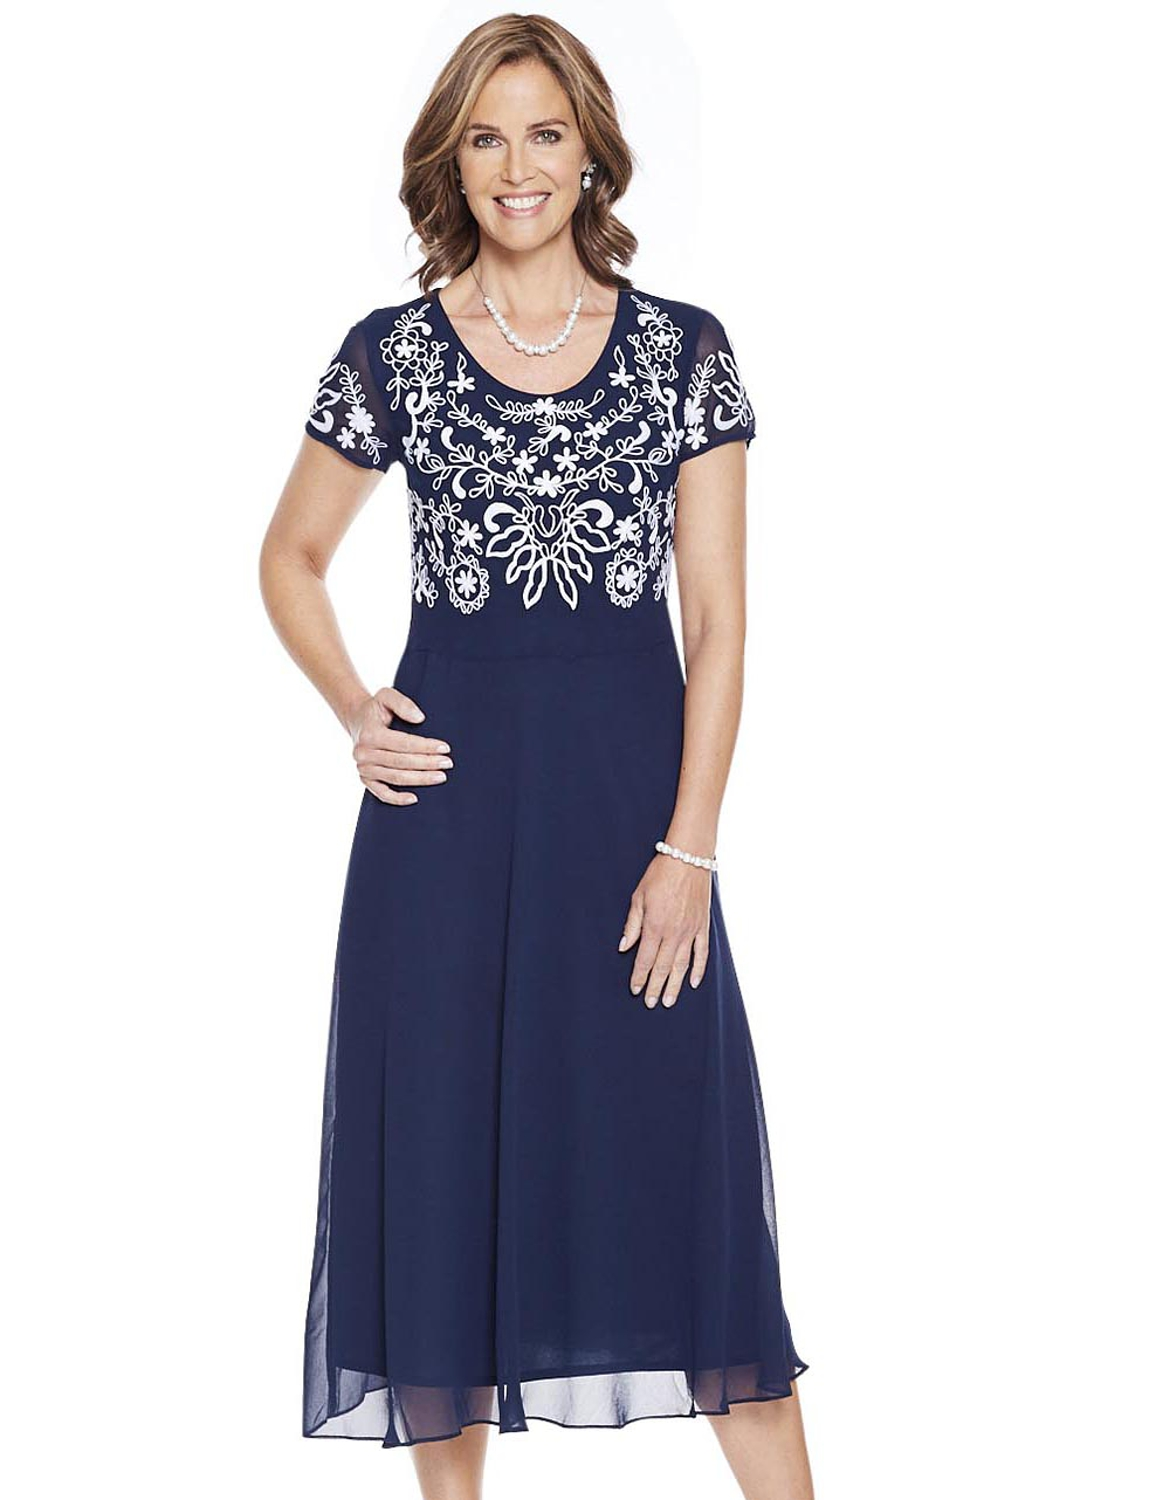 Embroidered Bodice Dress - Navy